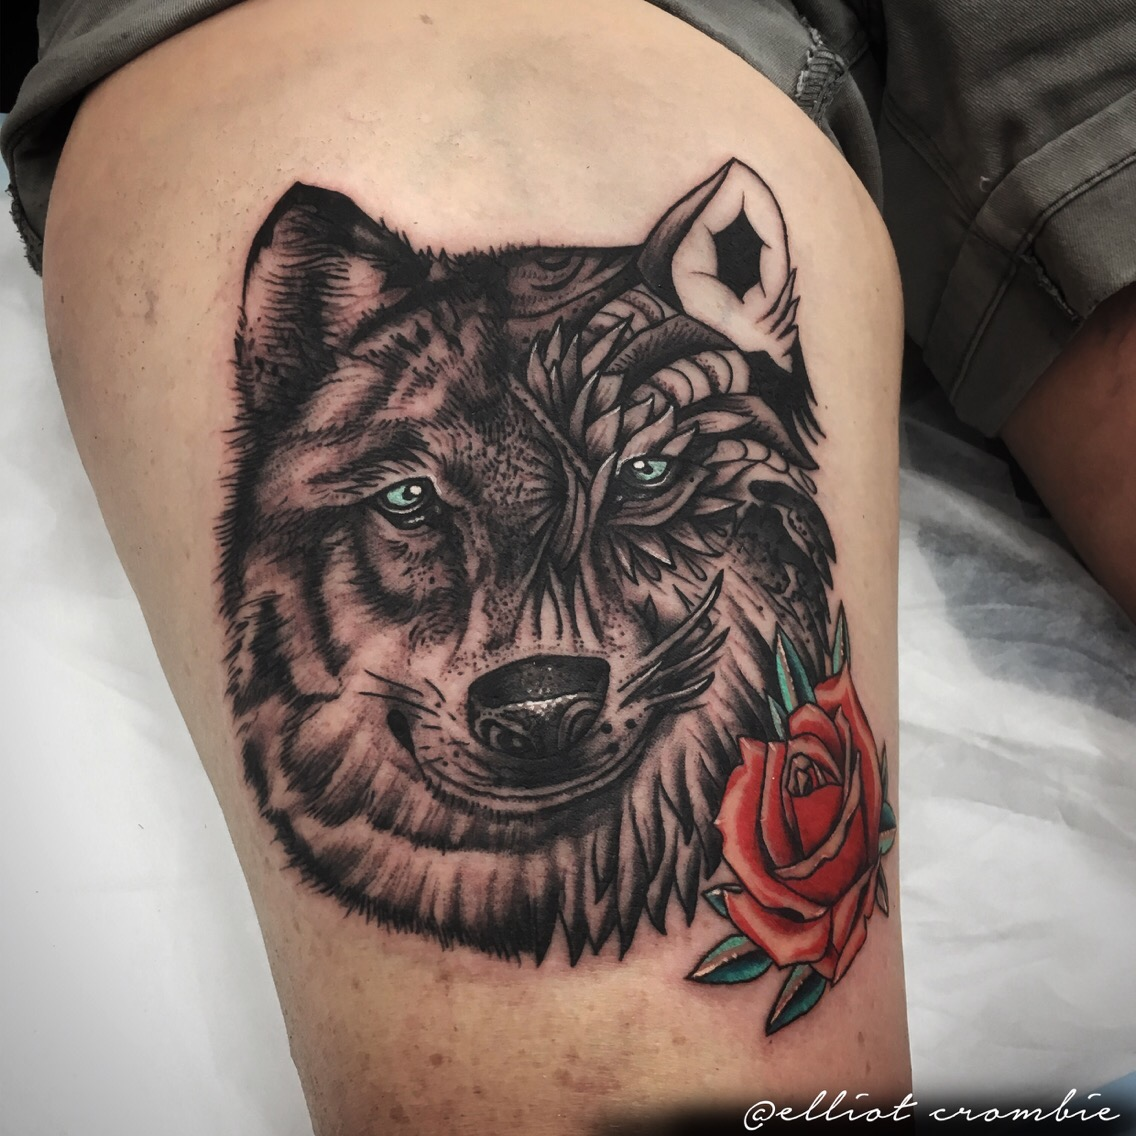 Elliot Crombie Brisbane Tattoos